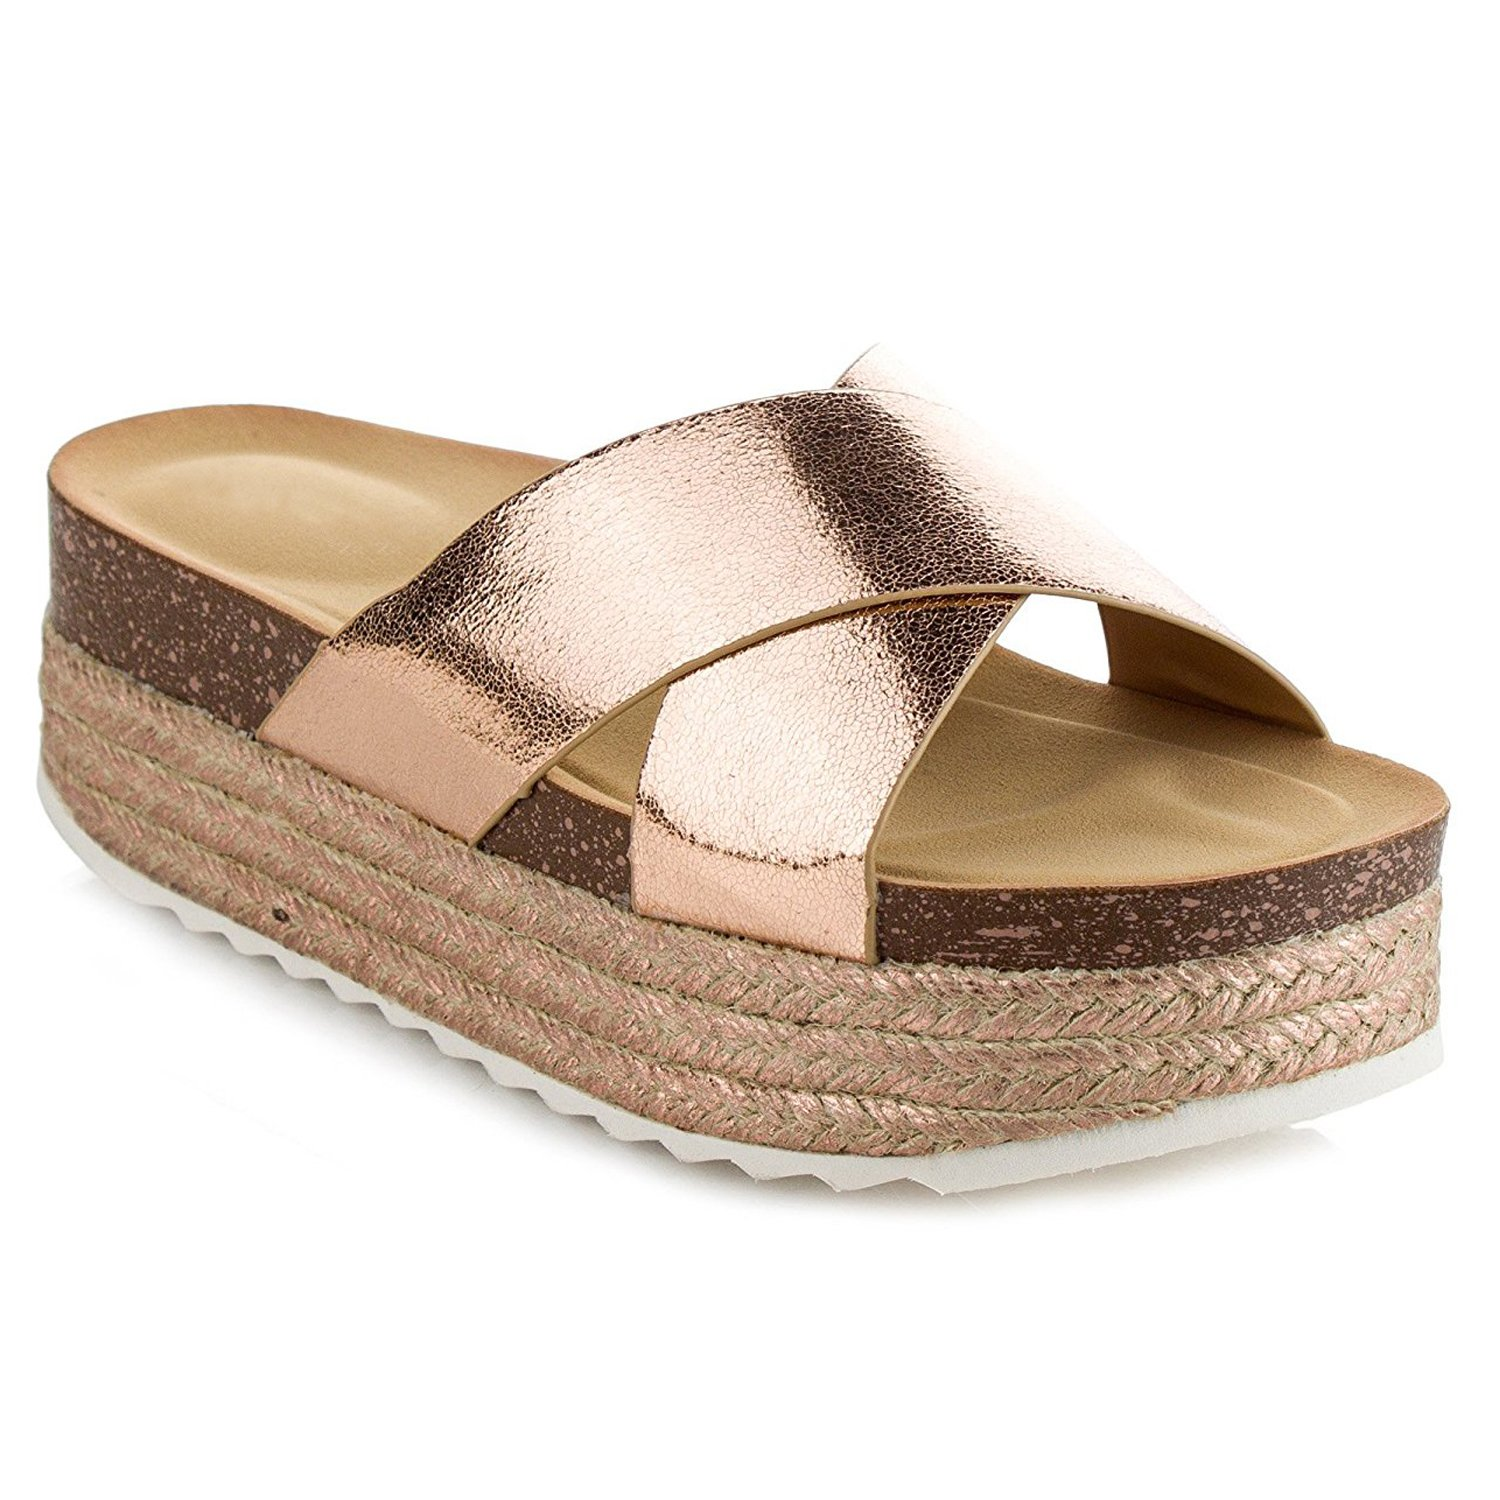 Women's Espadrille Platform Slide Sandals Fashion Criss Cross Slip On Flat Summer Beach Casual Shoes GG10 Rose Gold 8.5